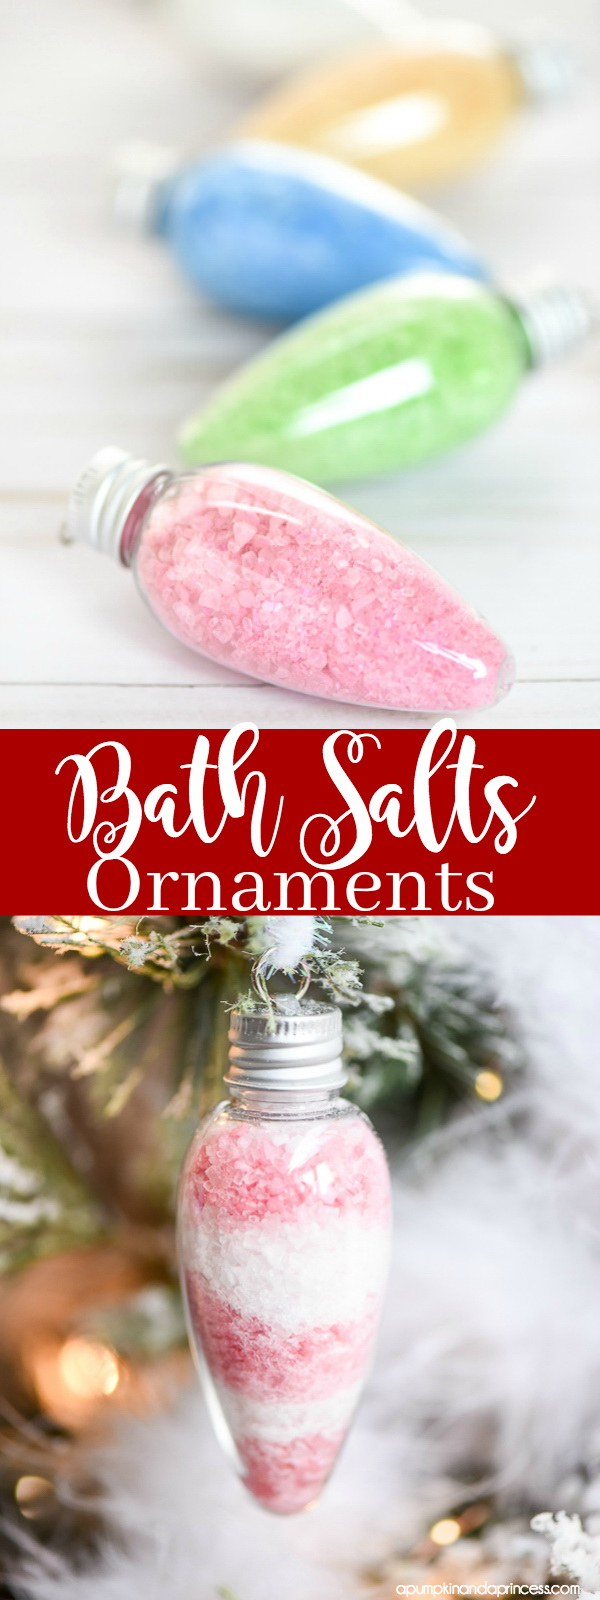 Bath Salts Ornaments.